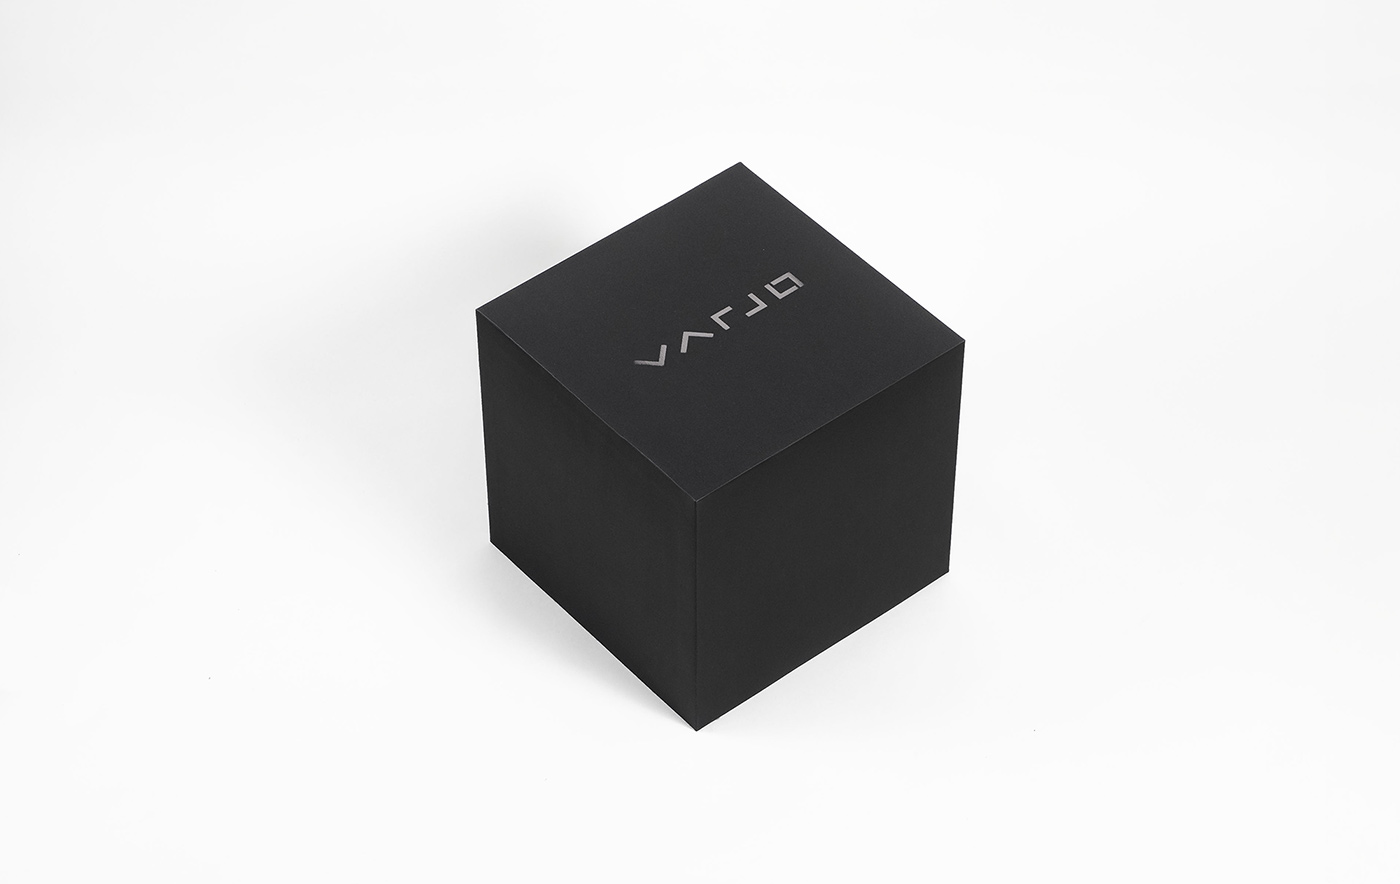 Varjo VR-1 packaging design